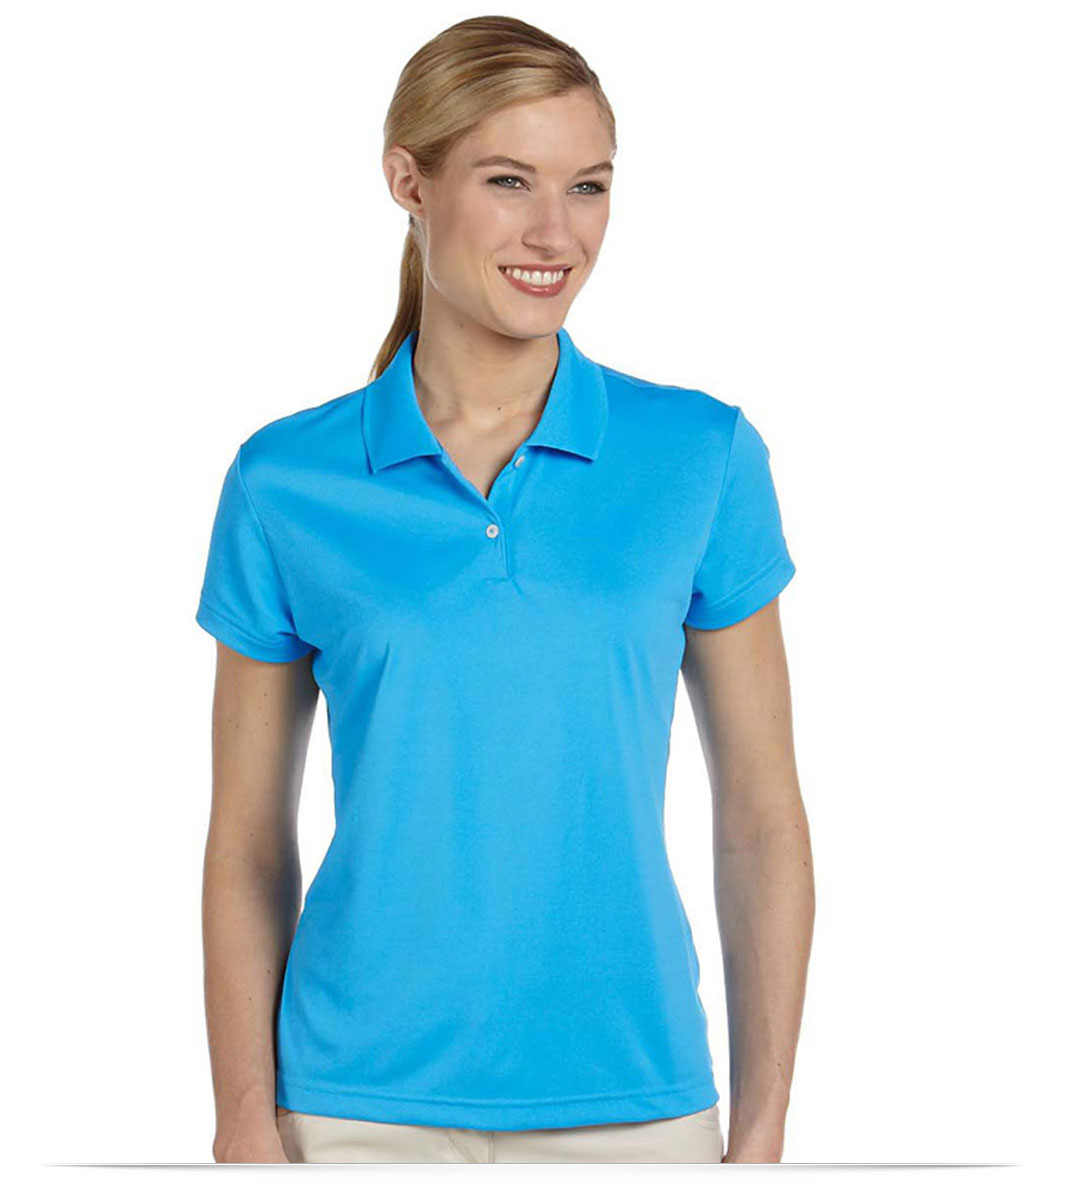 Customize Adidas Ladies Pique Polo